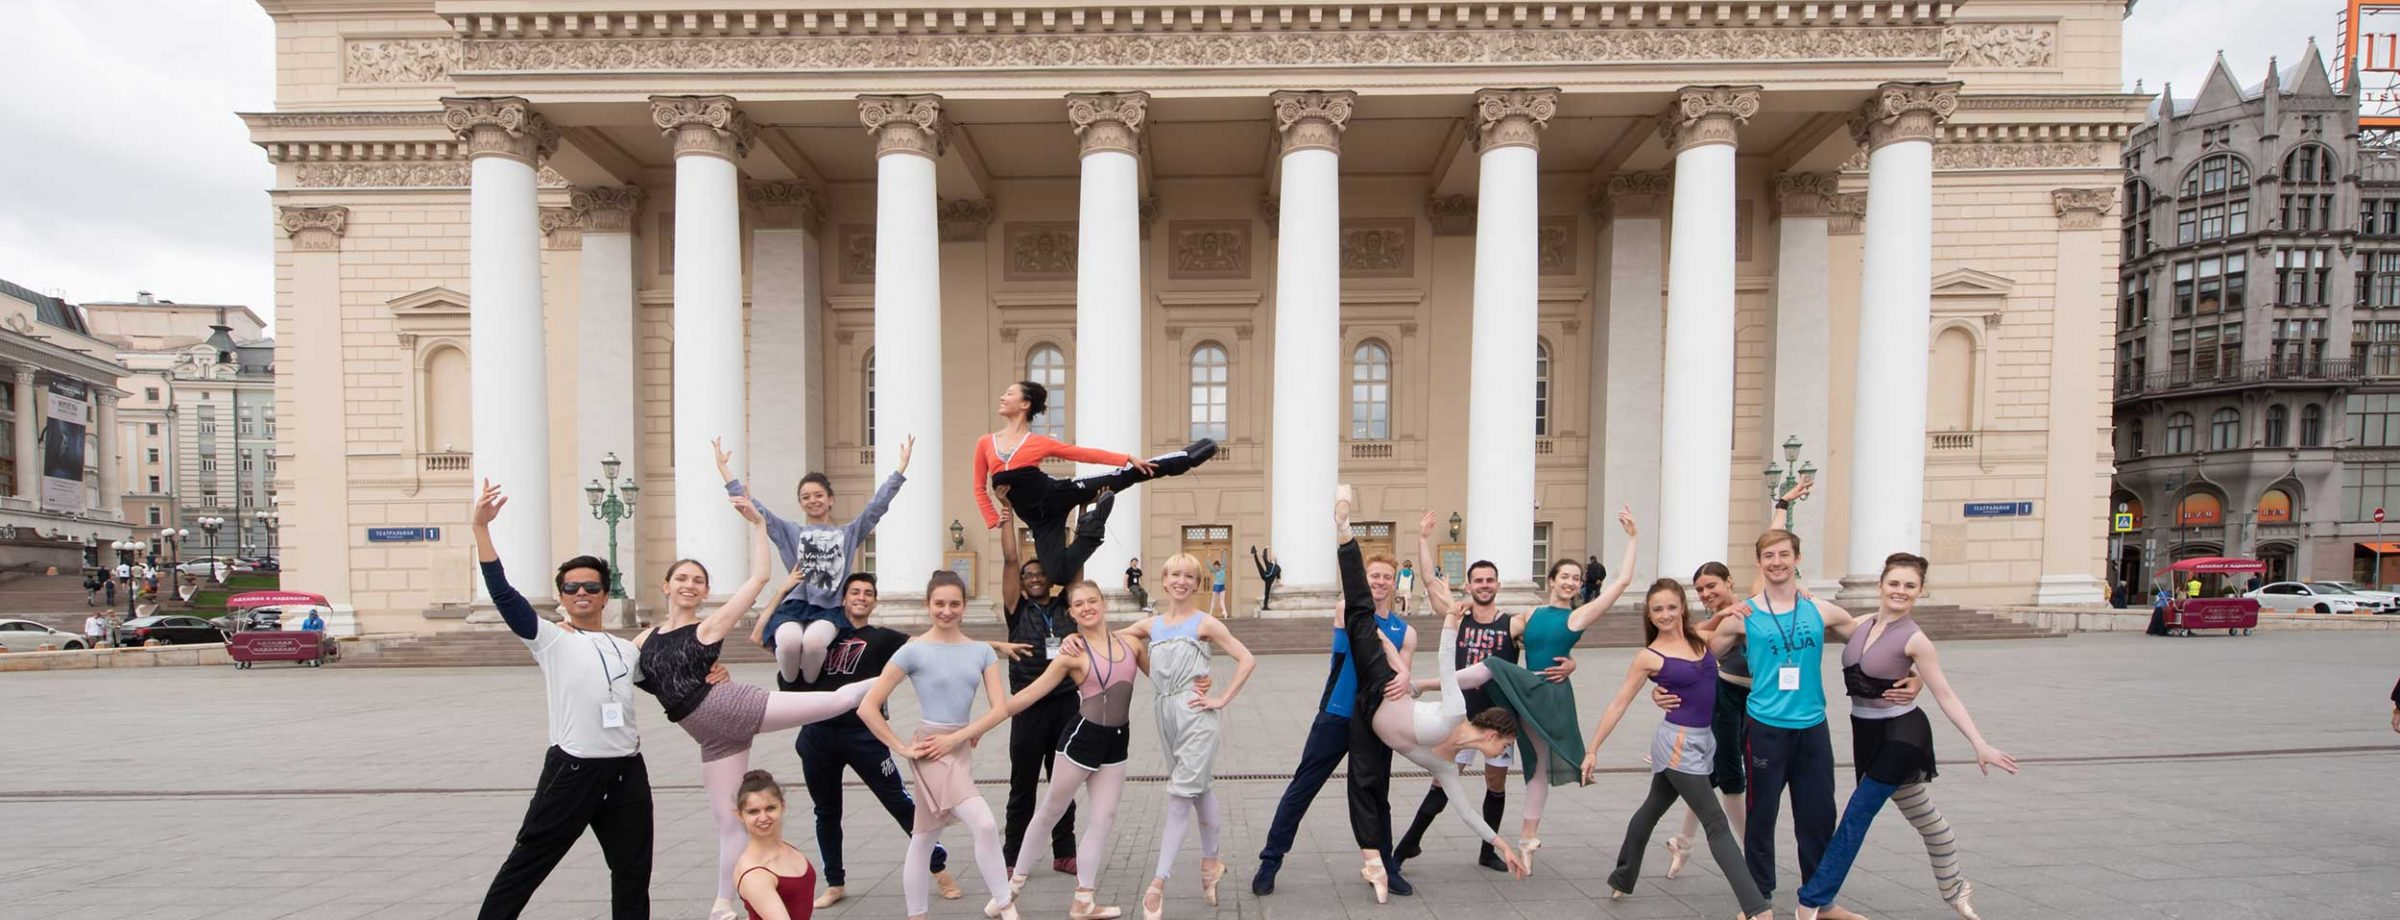 WEB-English-National-Ballet-dancers-in-front-of-the-Bolshoi-Theatre-(c)-Photography-by-ASH